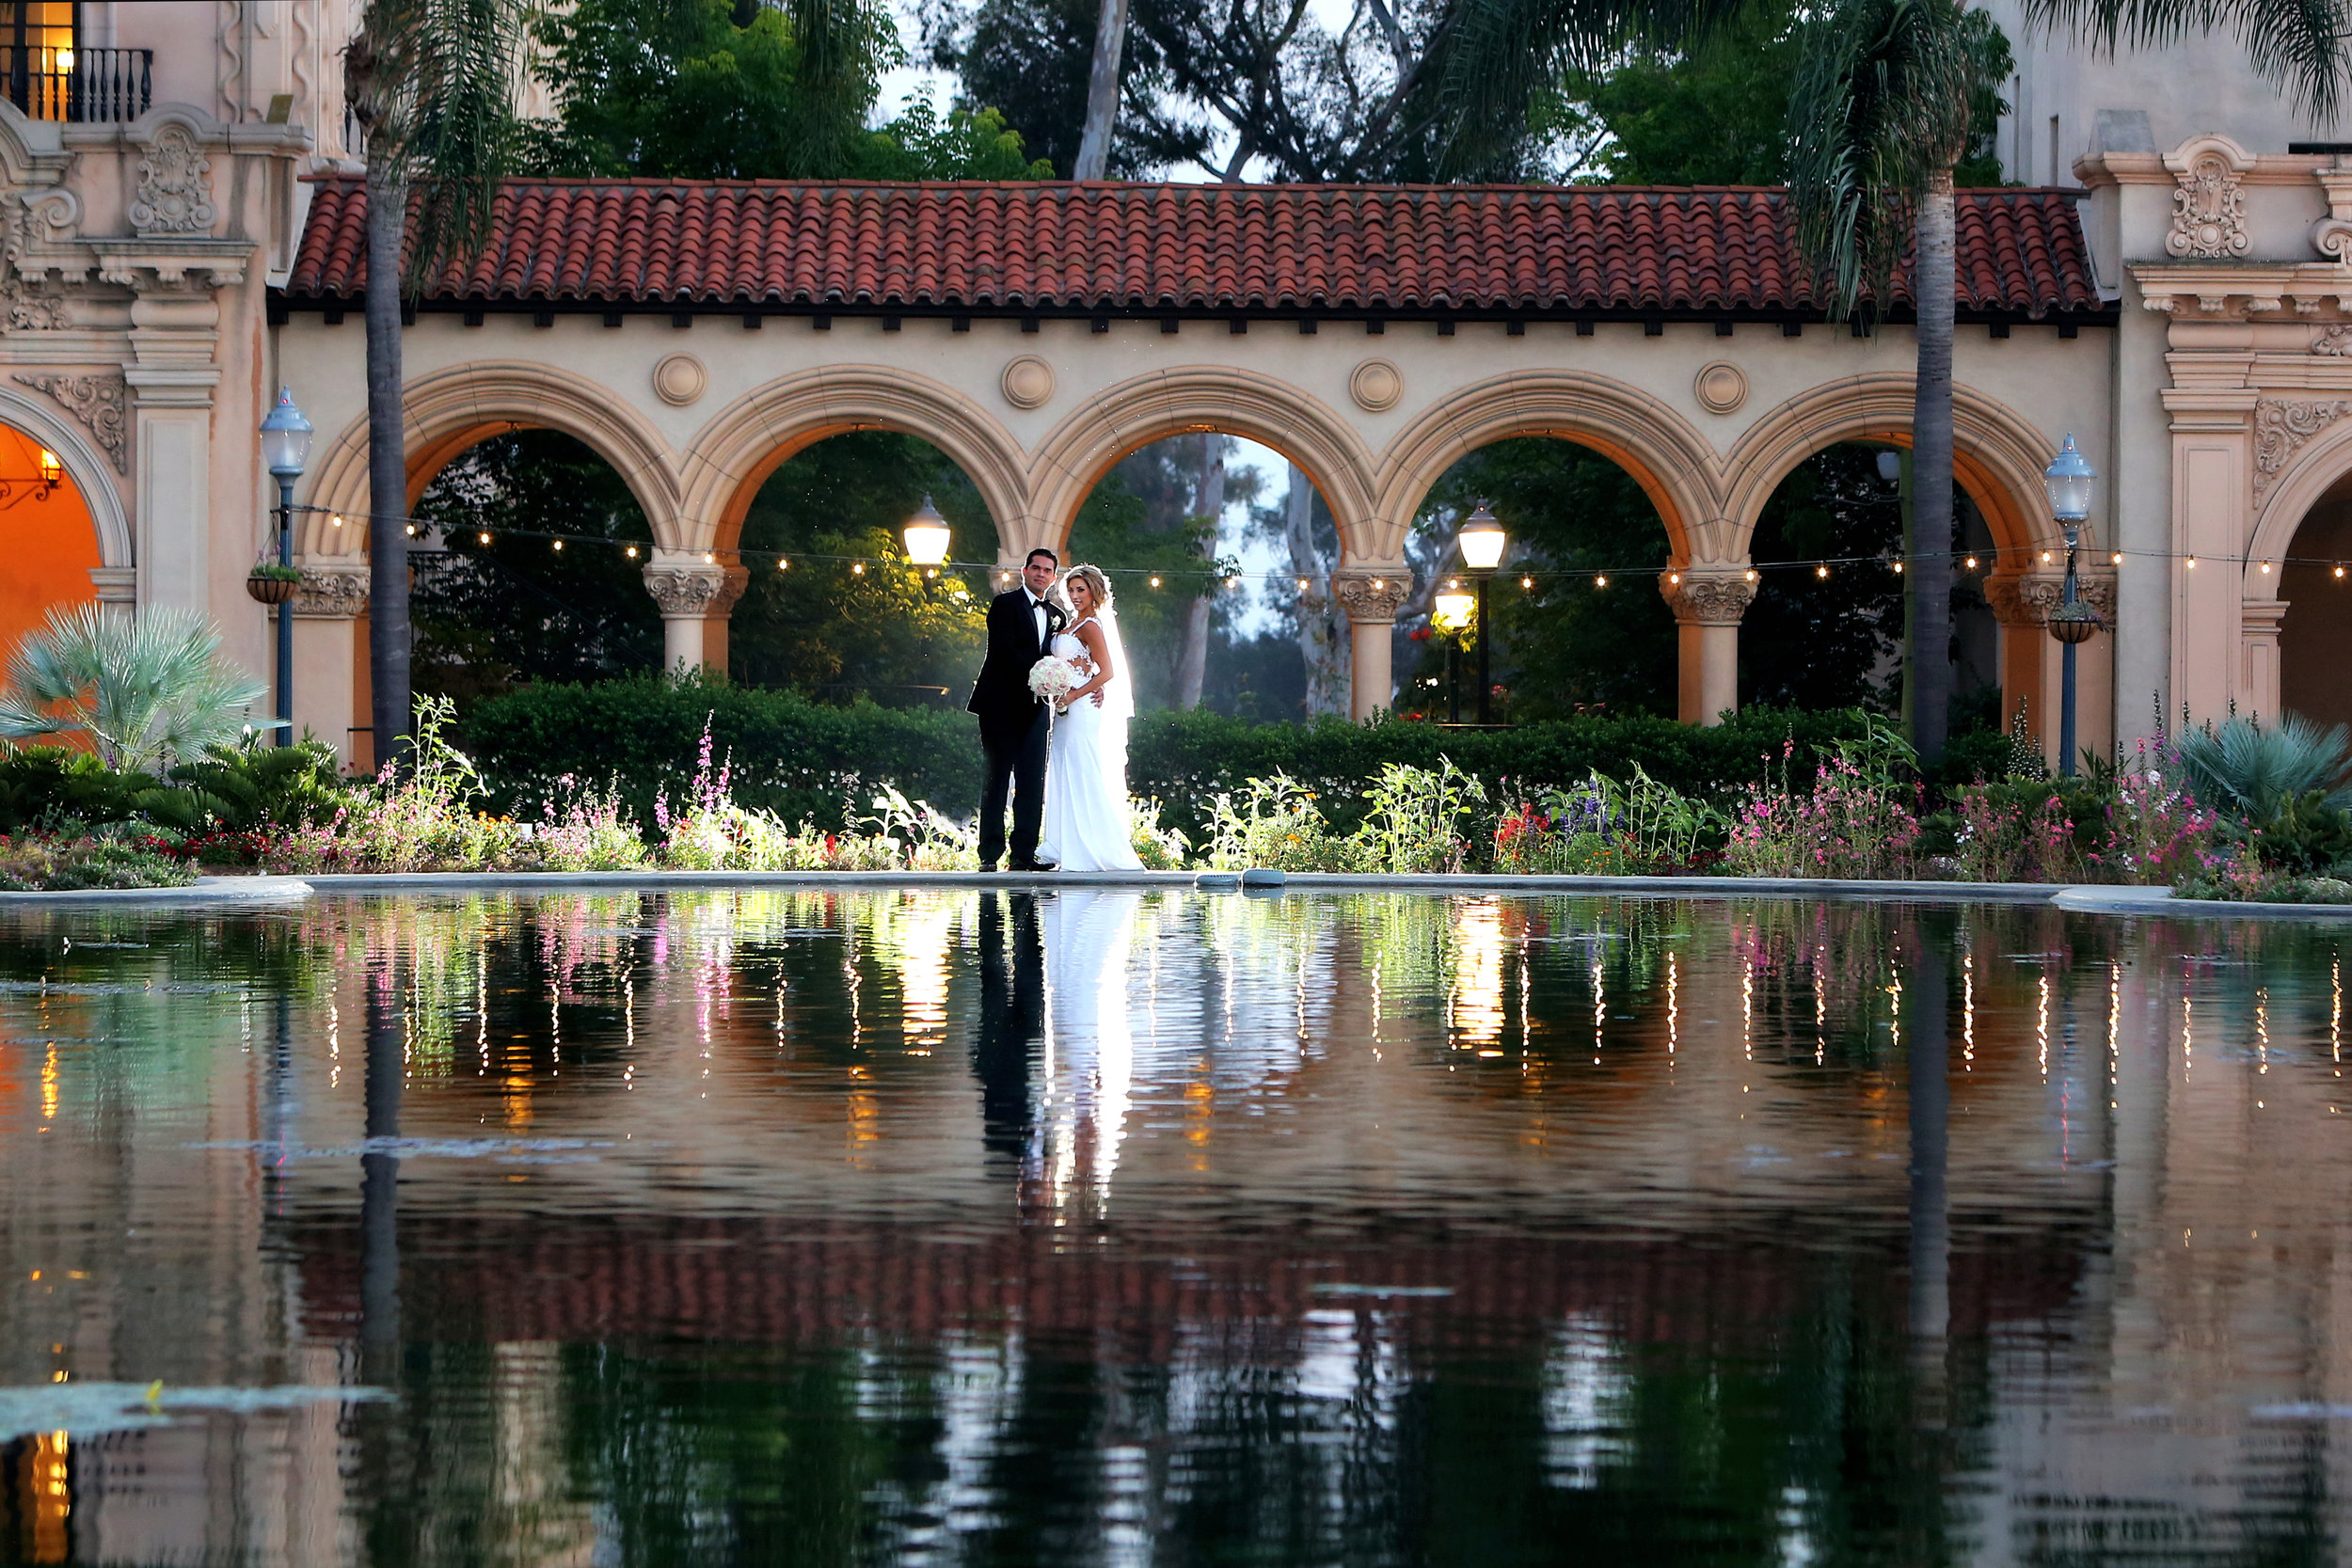 ShadowcatcherGalleryOne_SanDiegoWeddingPhotogrpaher_018.JPG